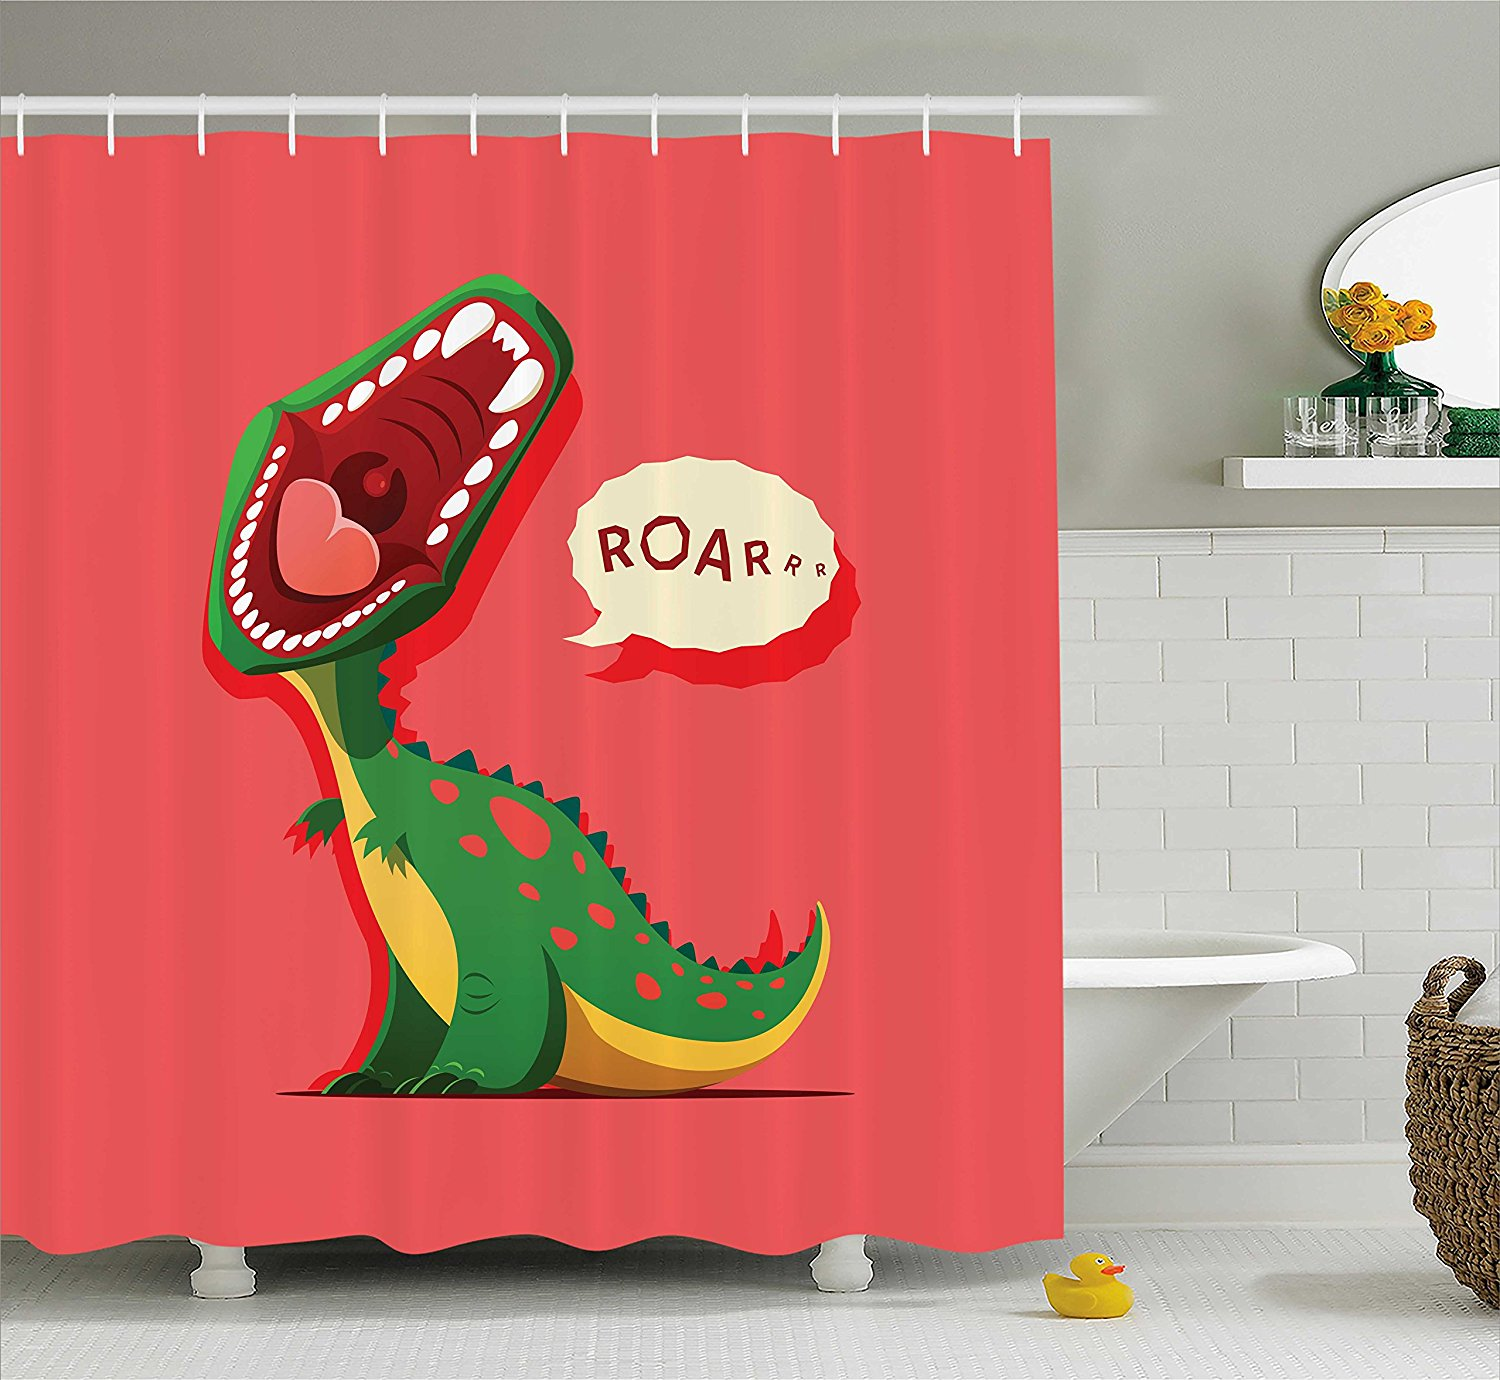 Dinosaur Shower Curtain Aggressive Prehistoric Cartoon Animal Roaring Open Mouth Wildlife Image Coral Green Yellow